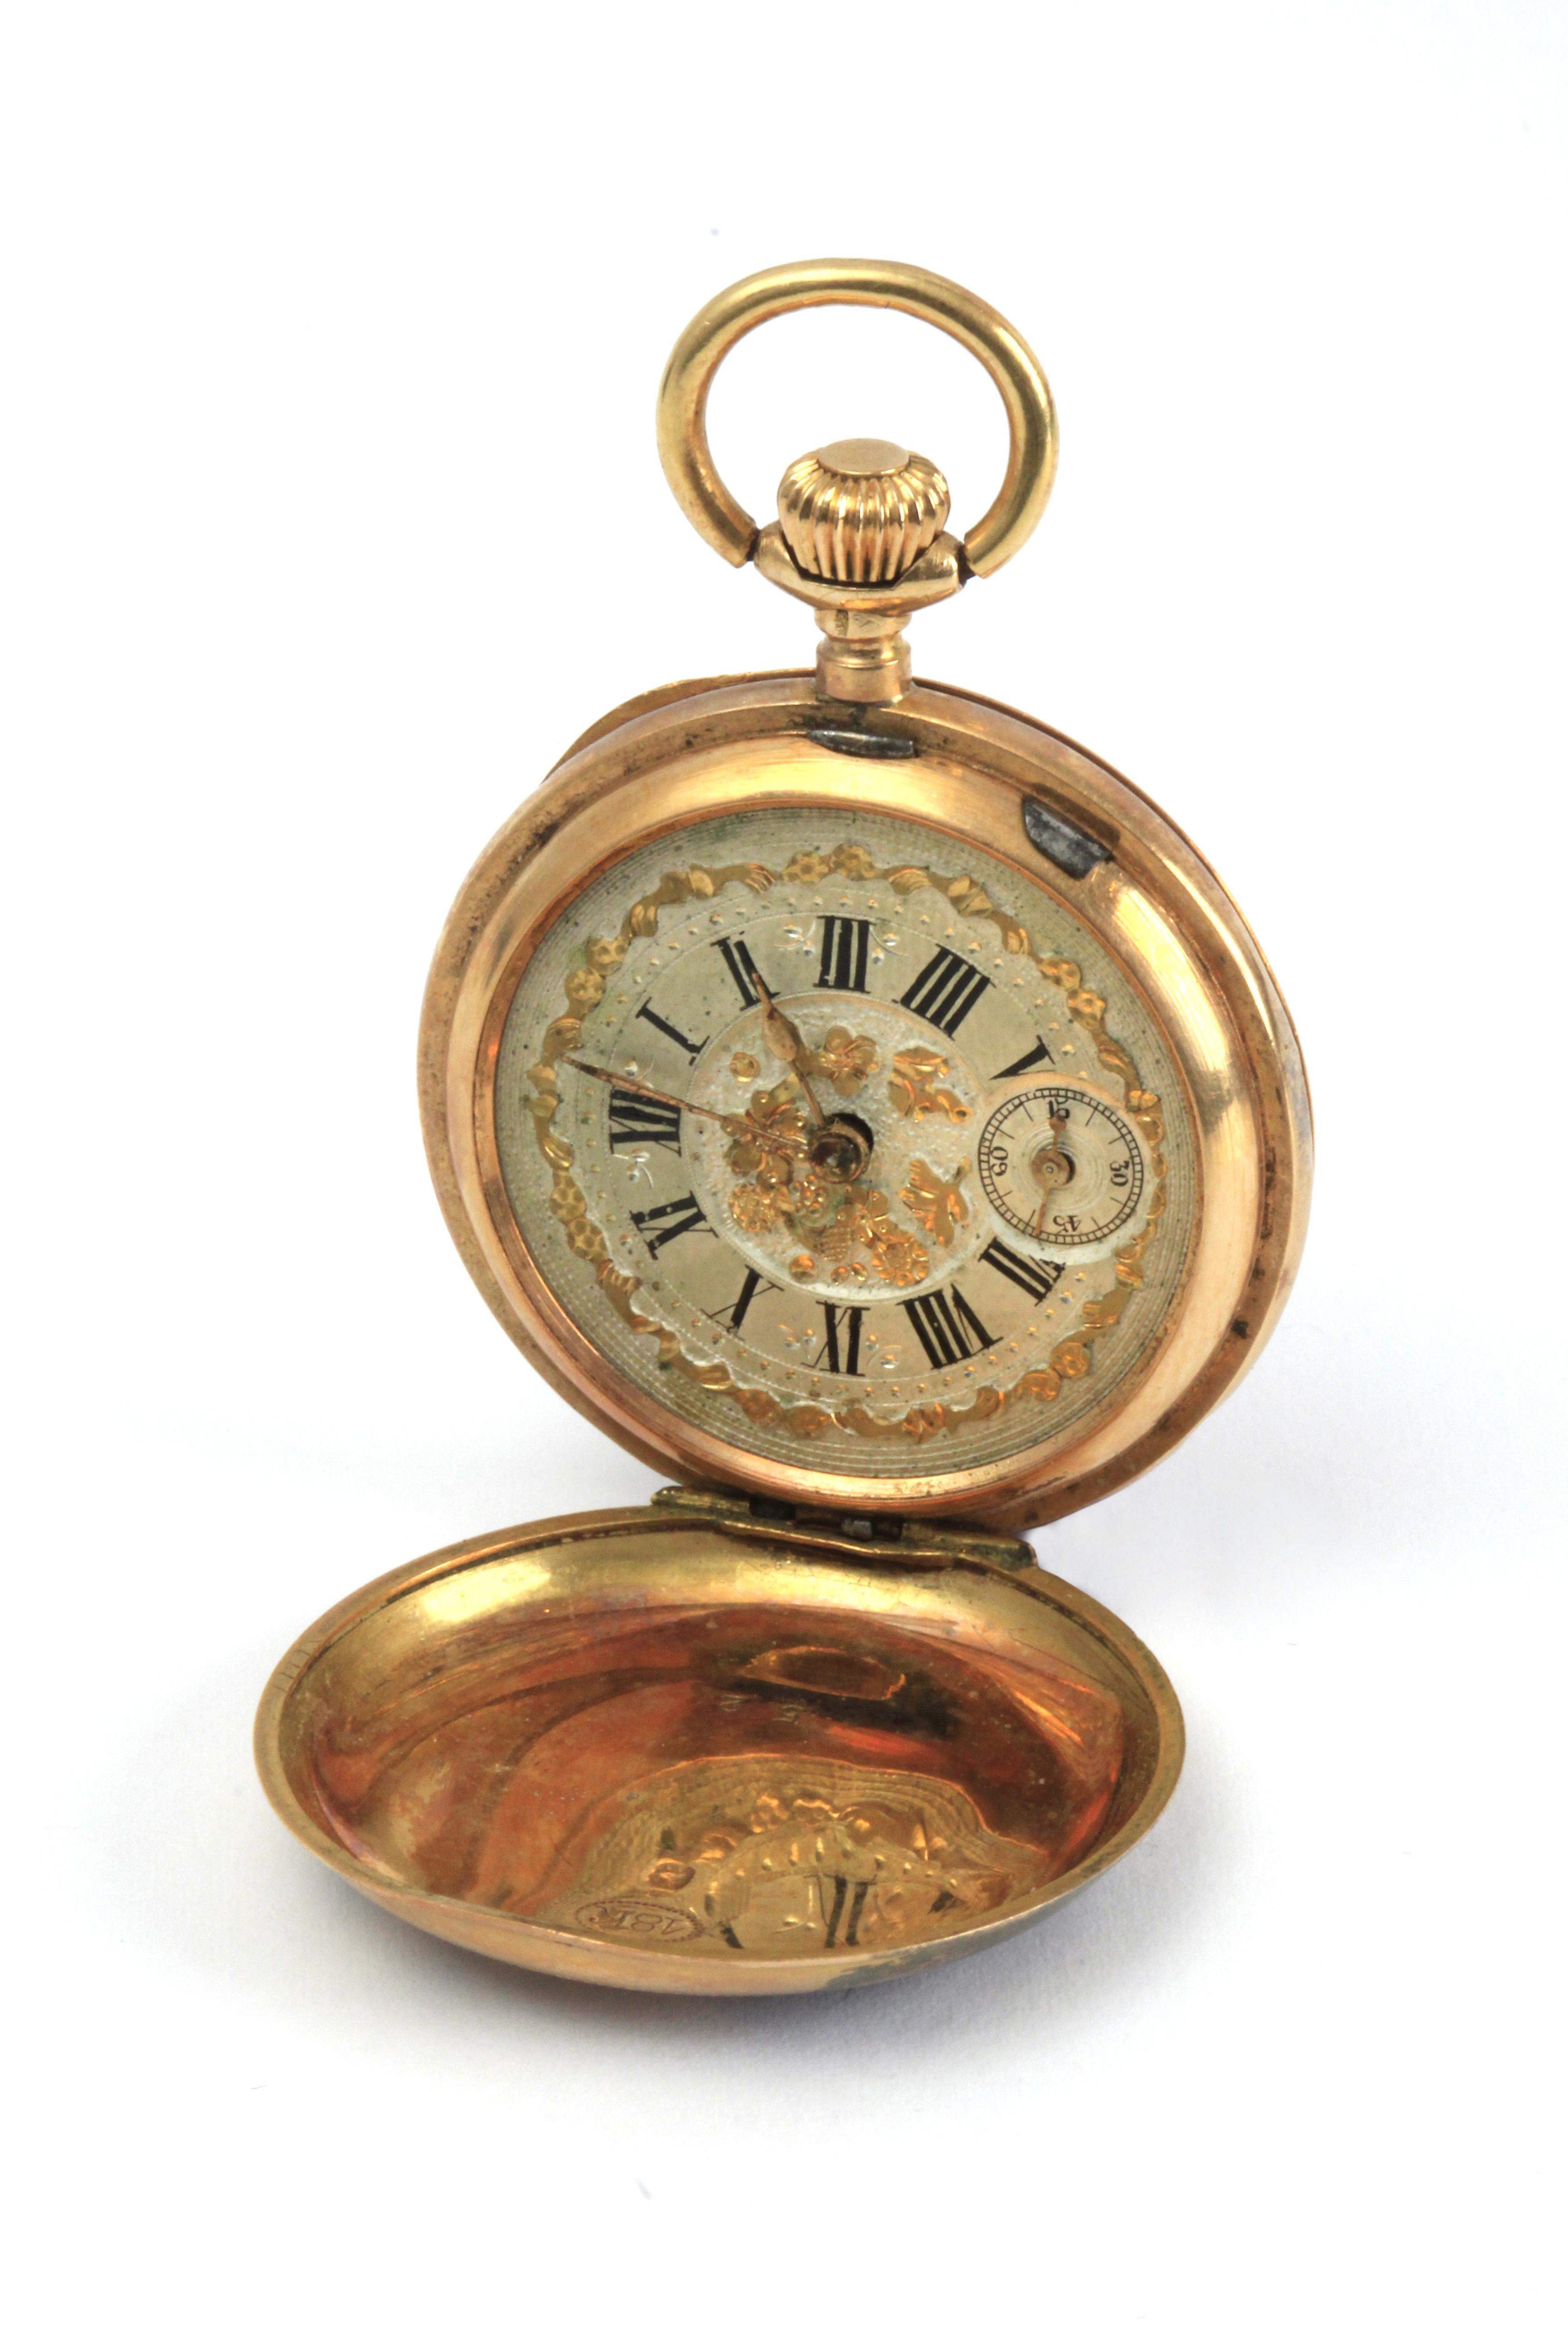 Lot 73 - Armand Locle. A late 19th century ladies double hunter pocket watch in 18 k. yellow gold